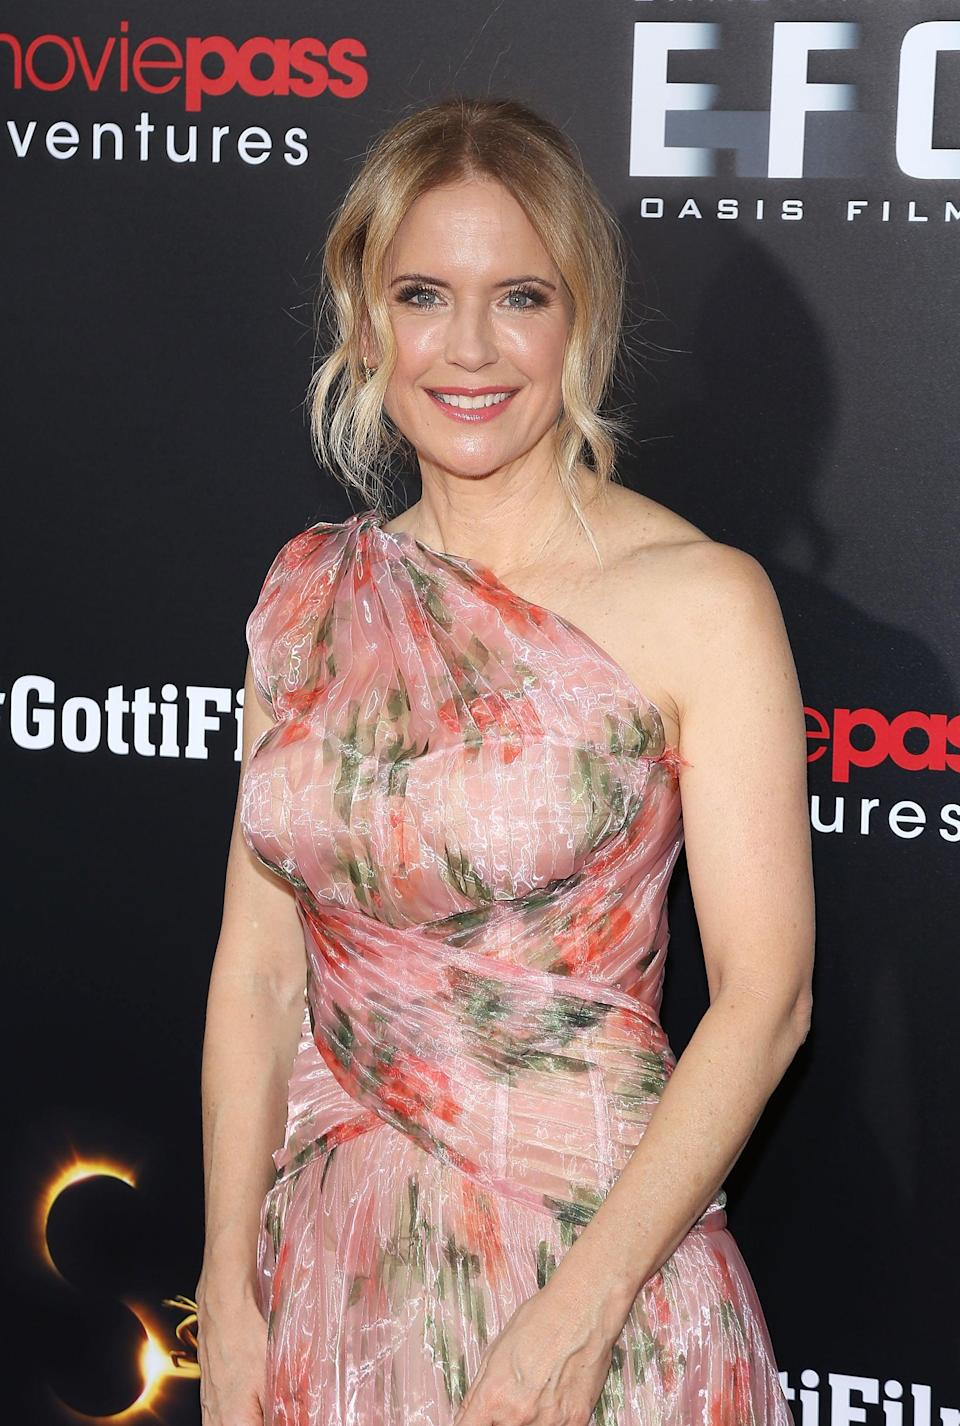 """<p>After a two-year battle with breast cancer, <a href=""""https://www.popsugar.com/celebrity/kelly-preston-dead-47611025"""" class=""""link rapid-noclick-resp"""" rel=""""nofollow noopener"""" target=""""_blank"""" data-ylk=""""slk:the actress died on July 12"""">the actress died on July 12</a>. She was 57. Following the news, Kelly's husband <a class=""""link rapid-noclick-resp"""" href=""""https://www.popsugar.com/John-Travolta"""" rel=""""nofollow noopener"""" target=""""_blank"""" data-ylk=""""slk:John Travolta"""">John Travolta</a>, posted <a href=""""https://www.popsugar.com/celebrity/john-travolta-tribute-to-kelly-preston-after-her-death-47611290"""" class=""""link rapid-noclick-resp"""" rel=""""nofollow noopener"""" target=""""_blank"""" data-ylk=""""slk:a heartfelt message on Instagram"""">a heartfelt message on Instagram</a>, writing, """"It is with a very heavy heart that I inform you that my beautiful wife Kelly has lost her two-year battle with breast cancer,"""" he wrote alongside an image of Kelly. """"She fought a courageous fight with the love and support of so many."""" </p>"""